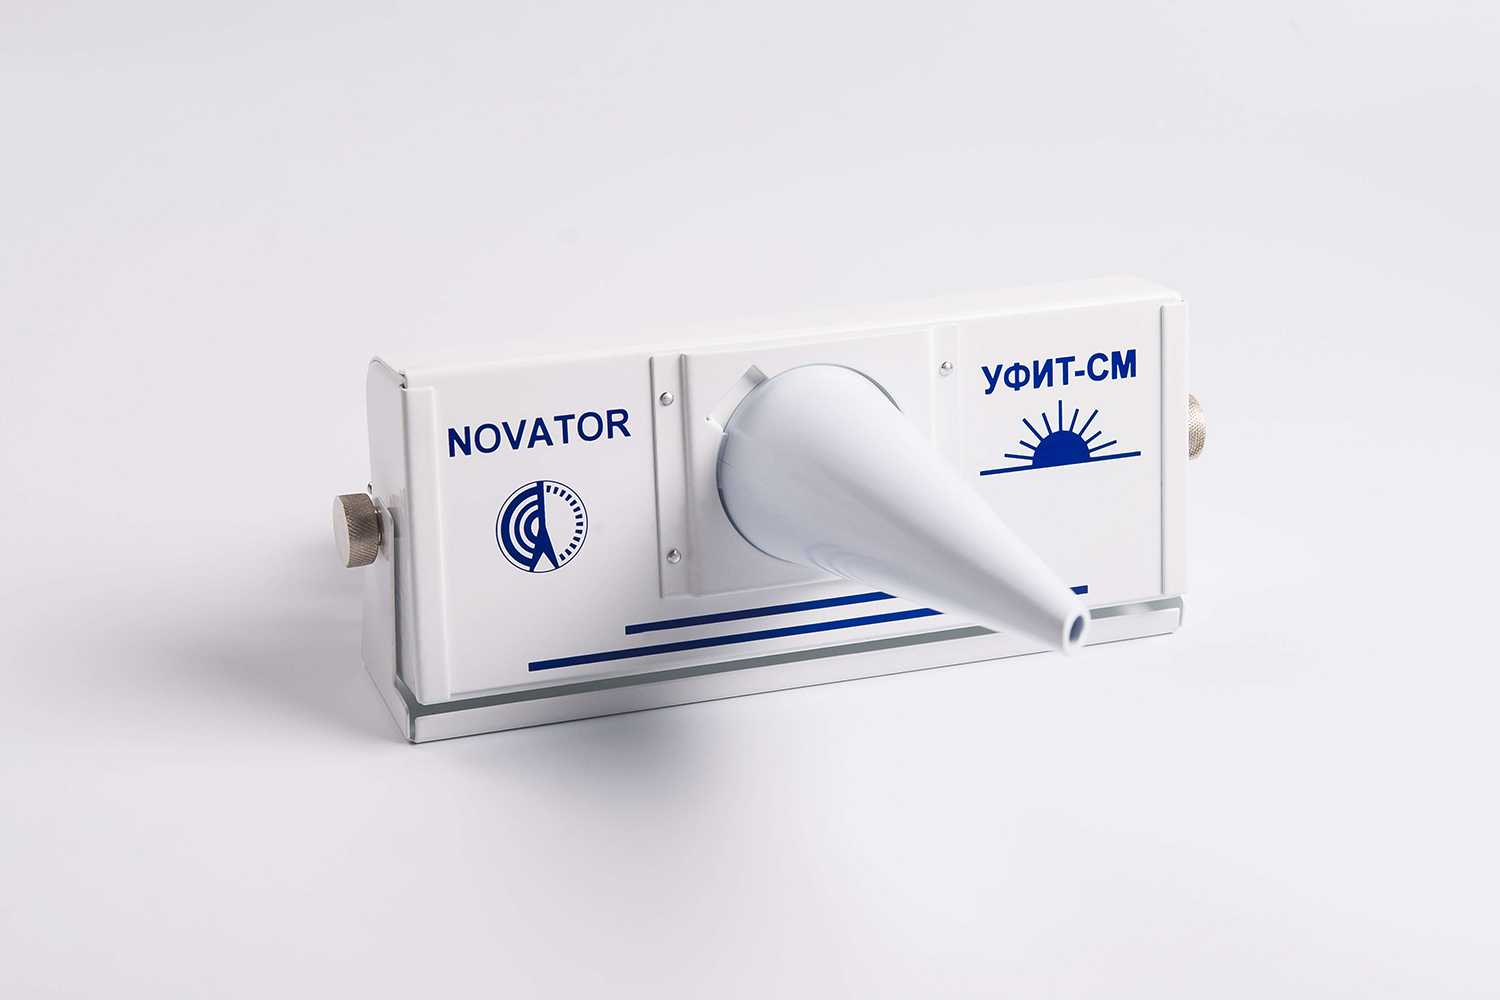 01 Novator - The device of bactericidal action of UFIT-CM